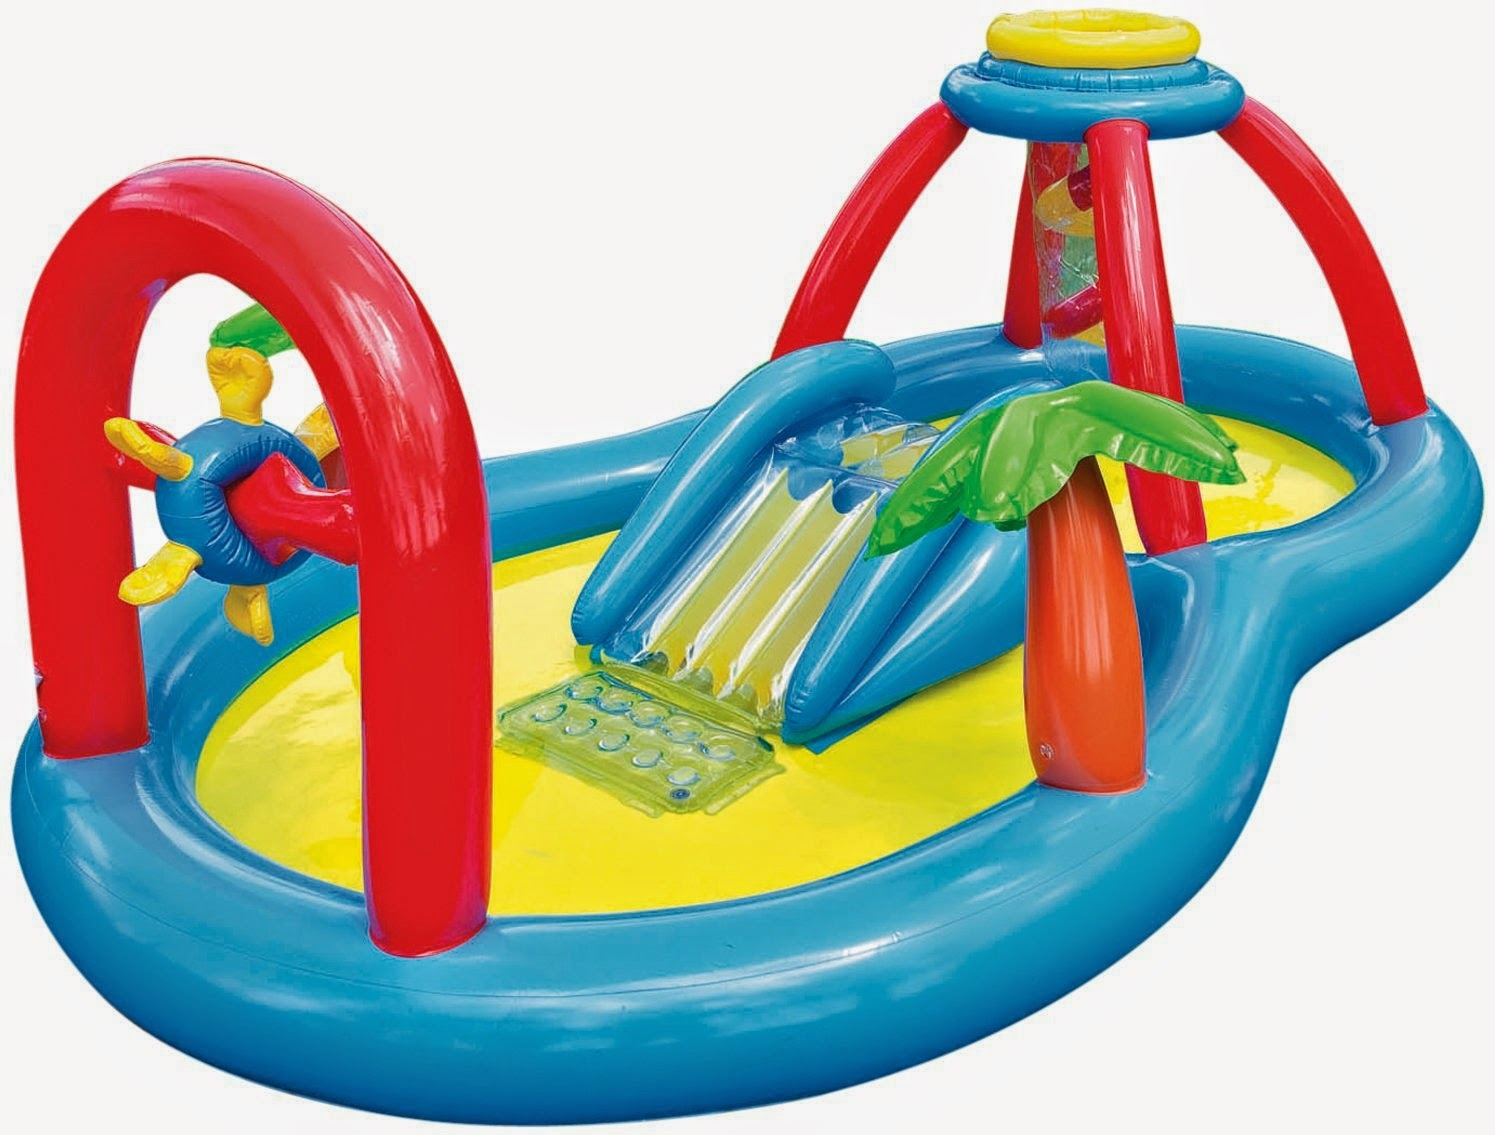 Intex 57449EP Windmill Plastic Swimming Pools For Kids